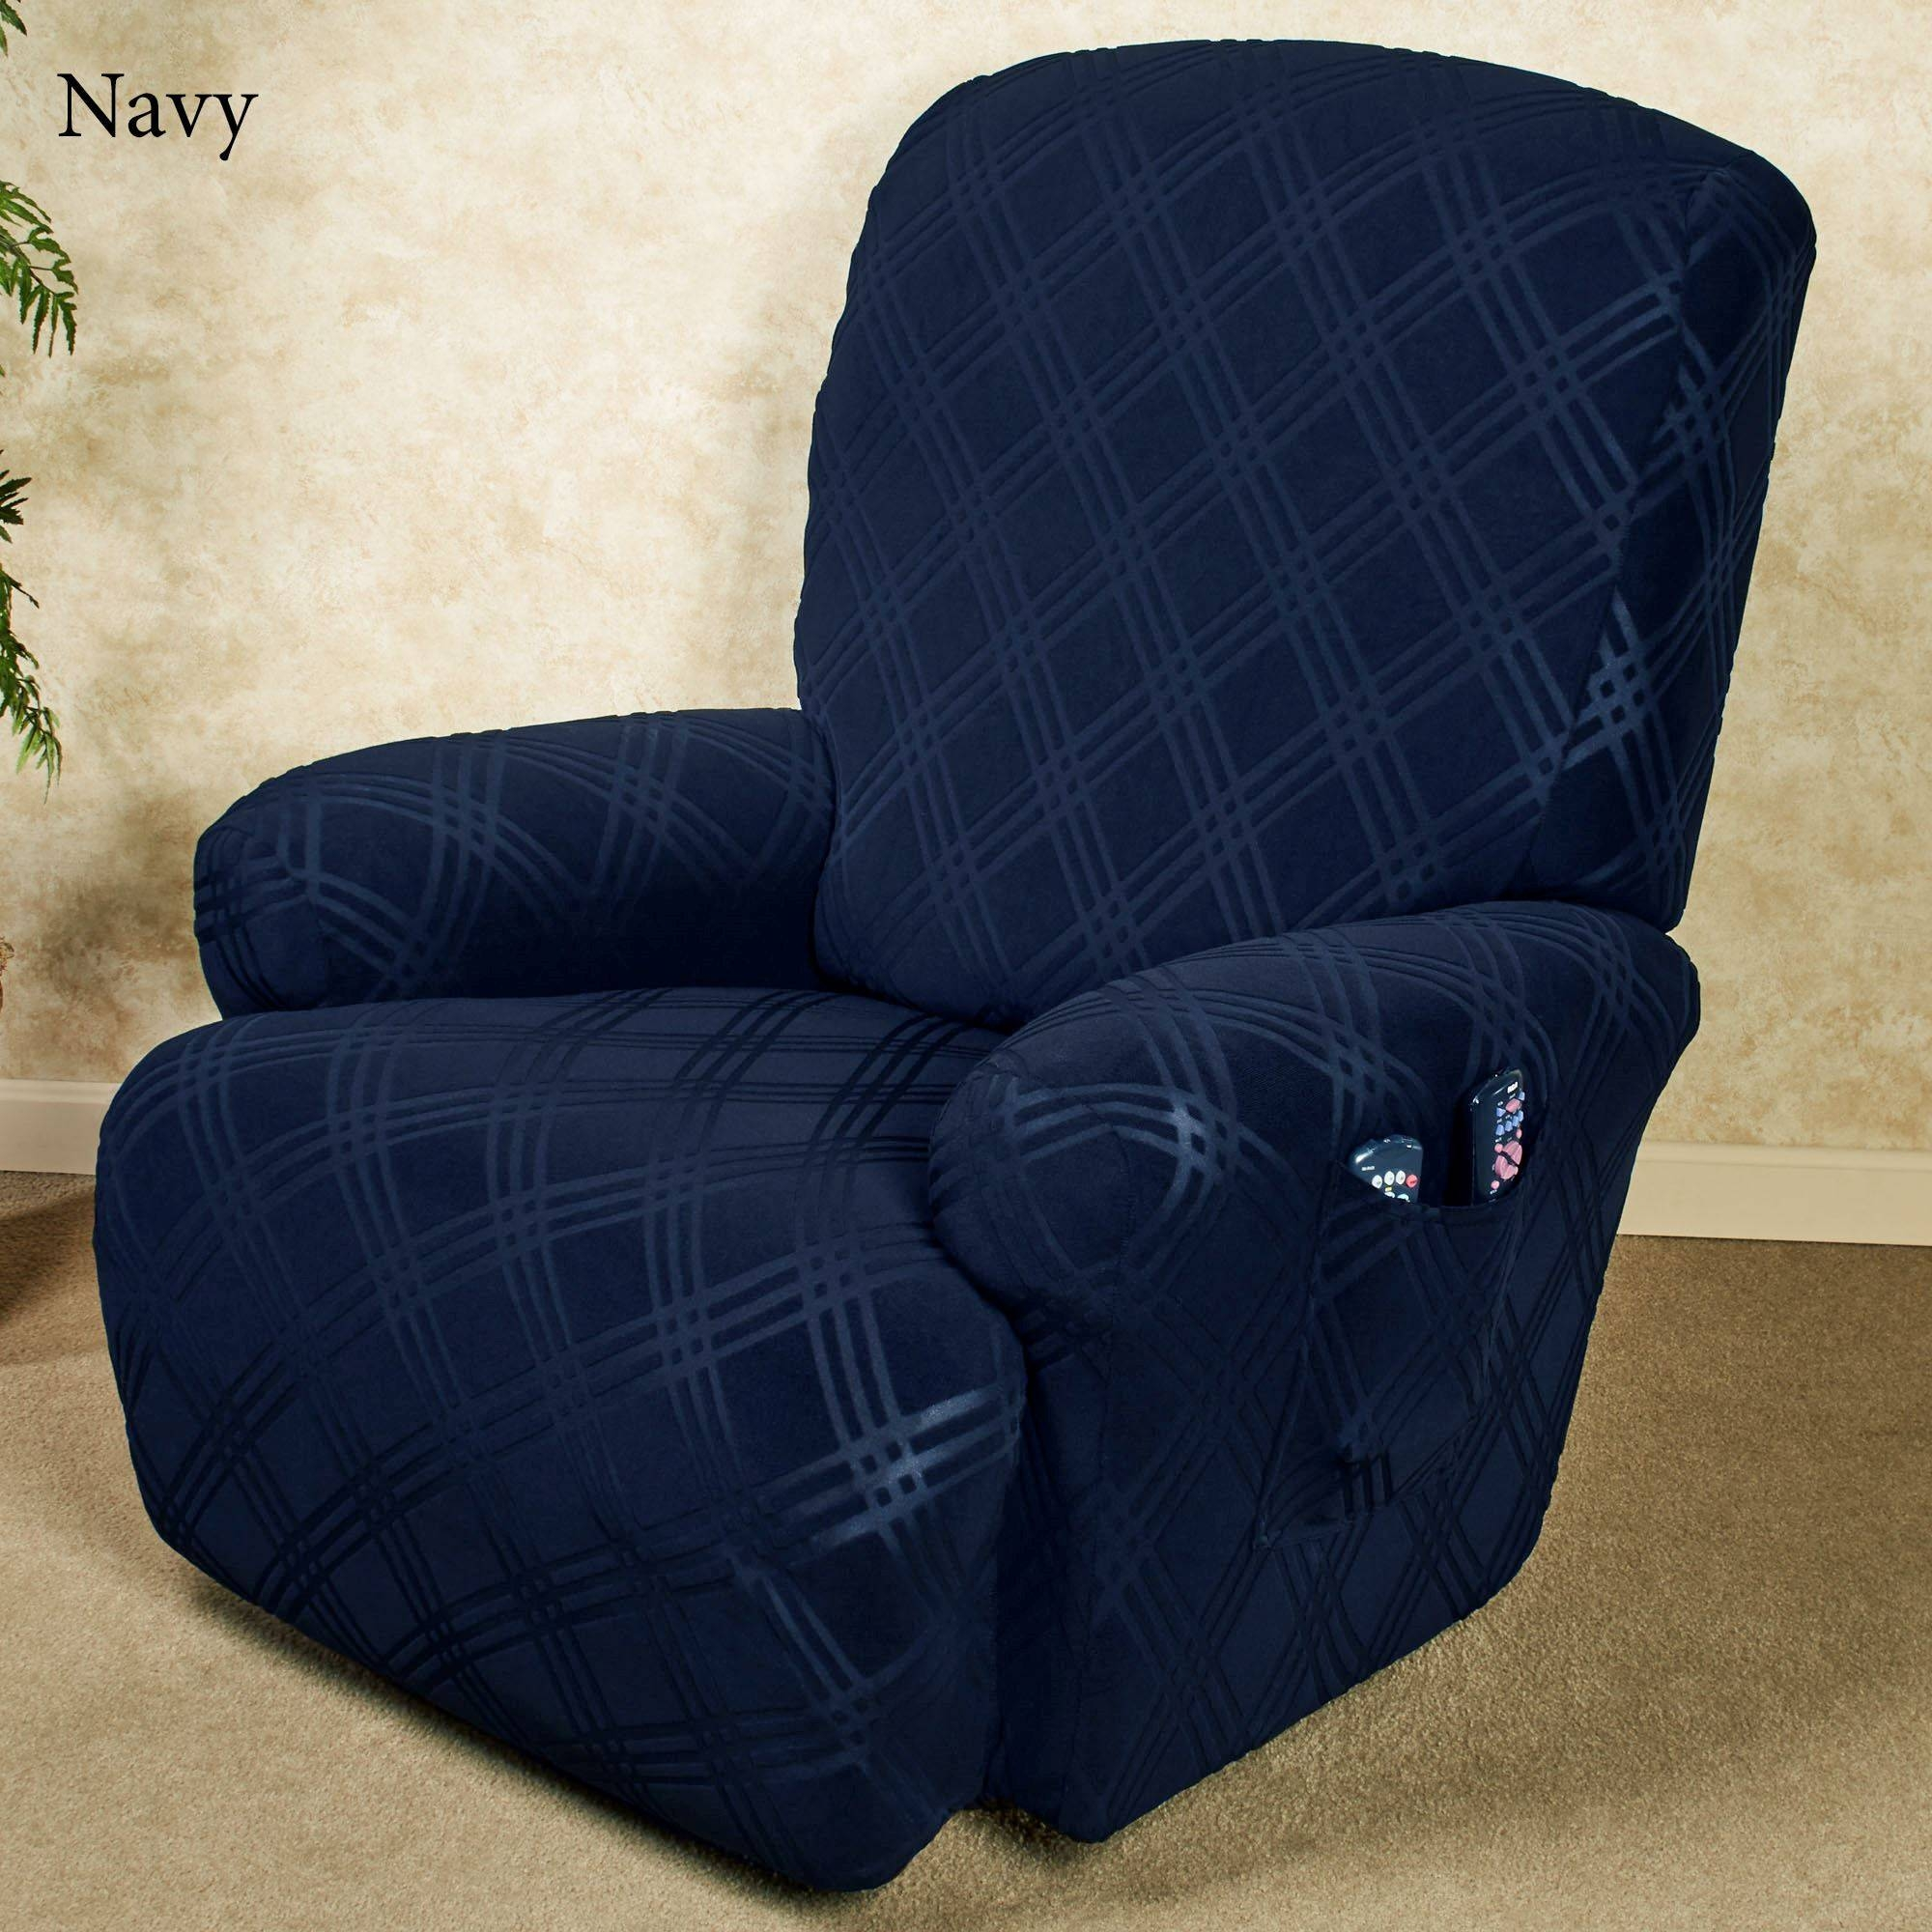 Double Diamond Stretch Recliner Slipcovers regarding Navy Blue Slipcovers (Image 4 of 15)